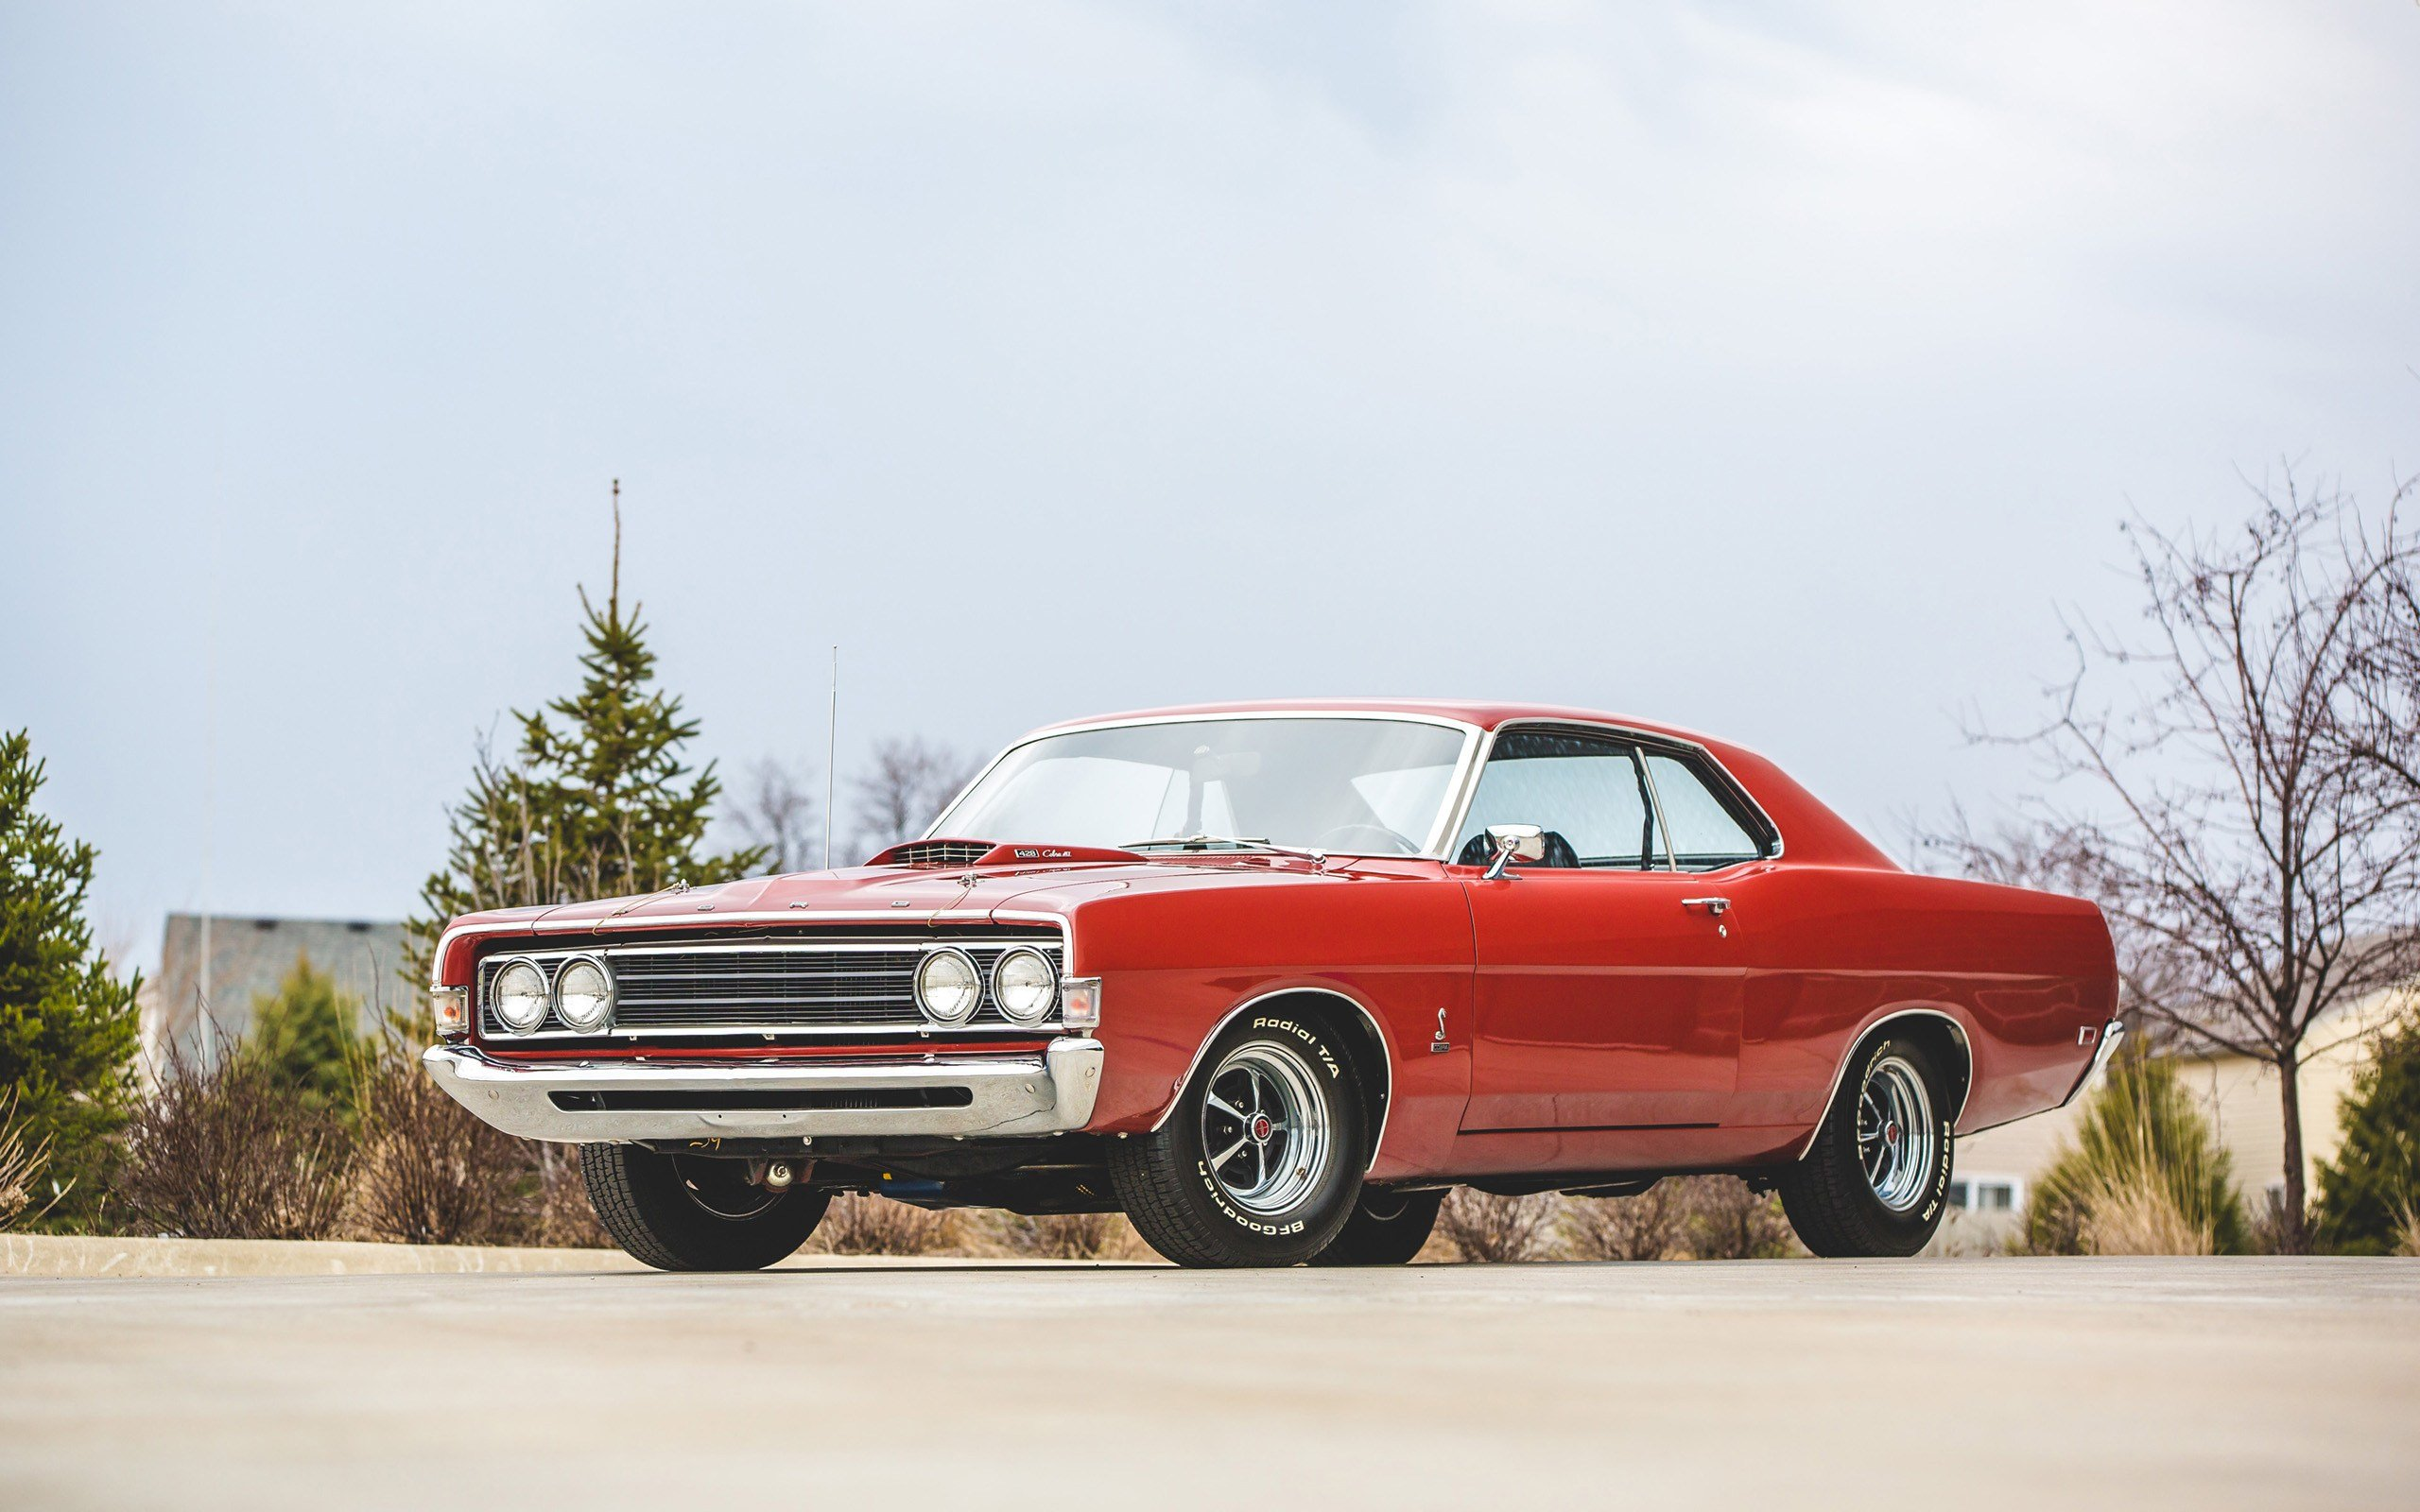 Latest 1969 Ford Torino Cobra Indian Fire Red Wallpaper Hd Car Free Download